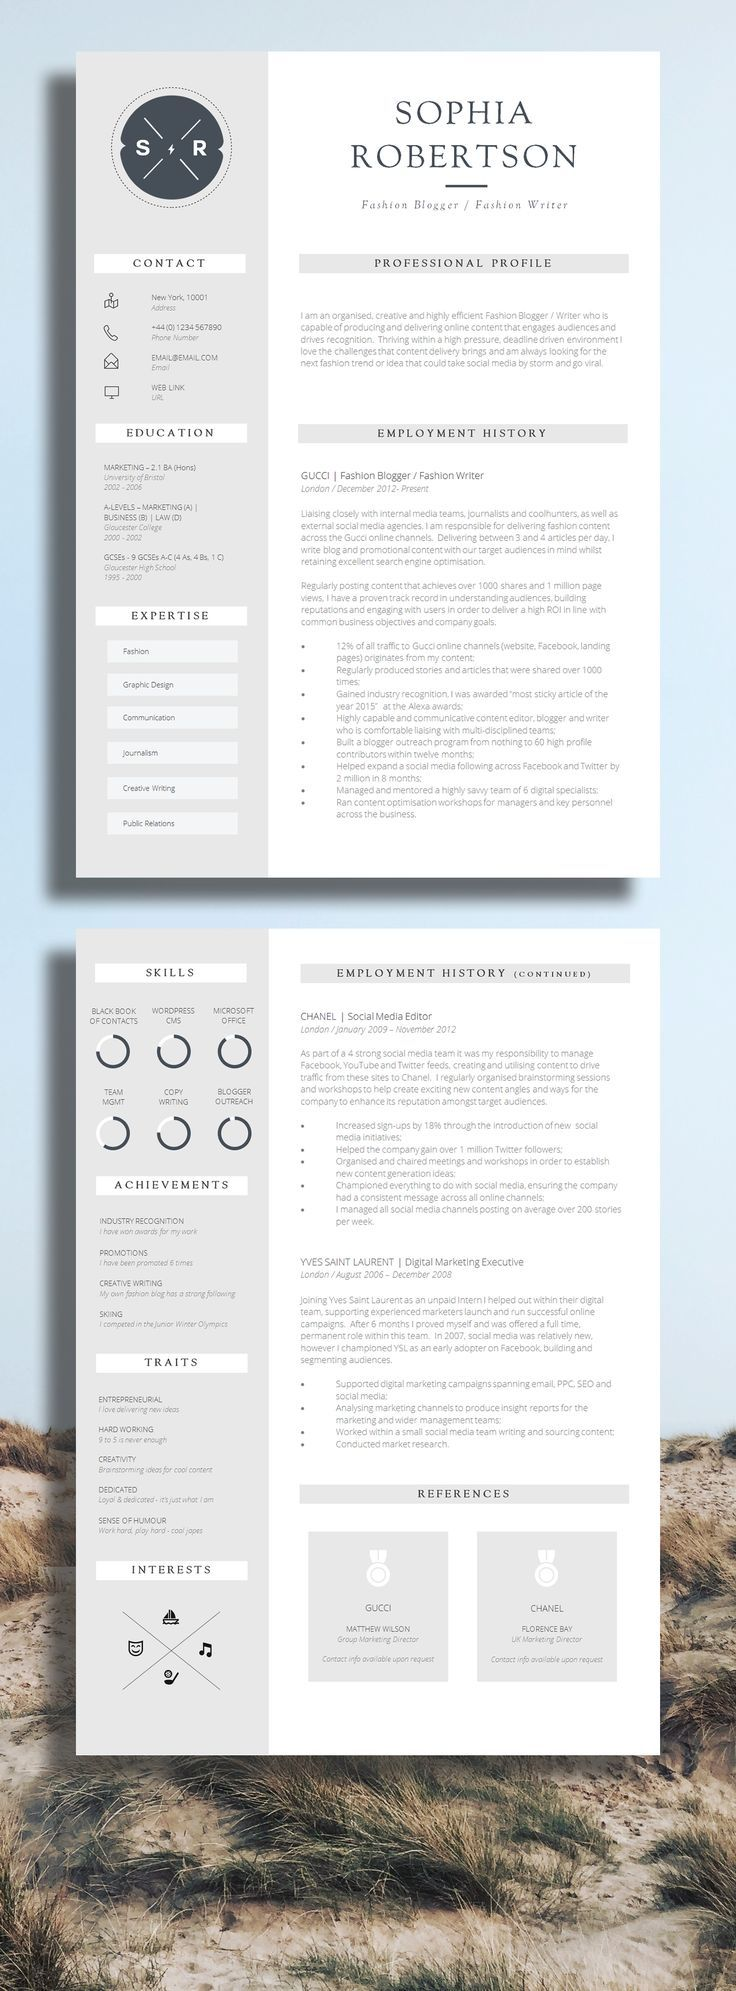 Professional Creative Resume Template For Ms Word  Modern Resume